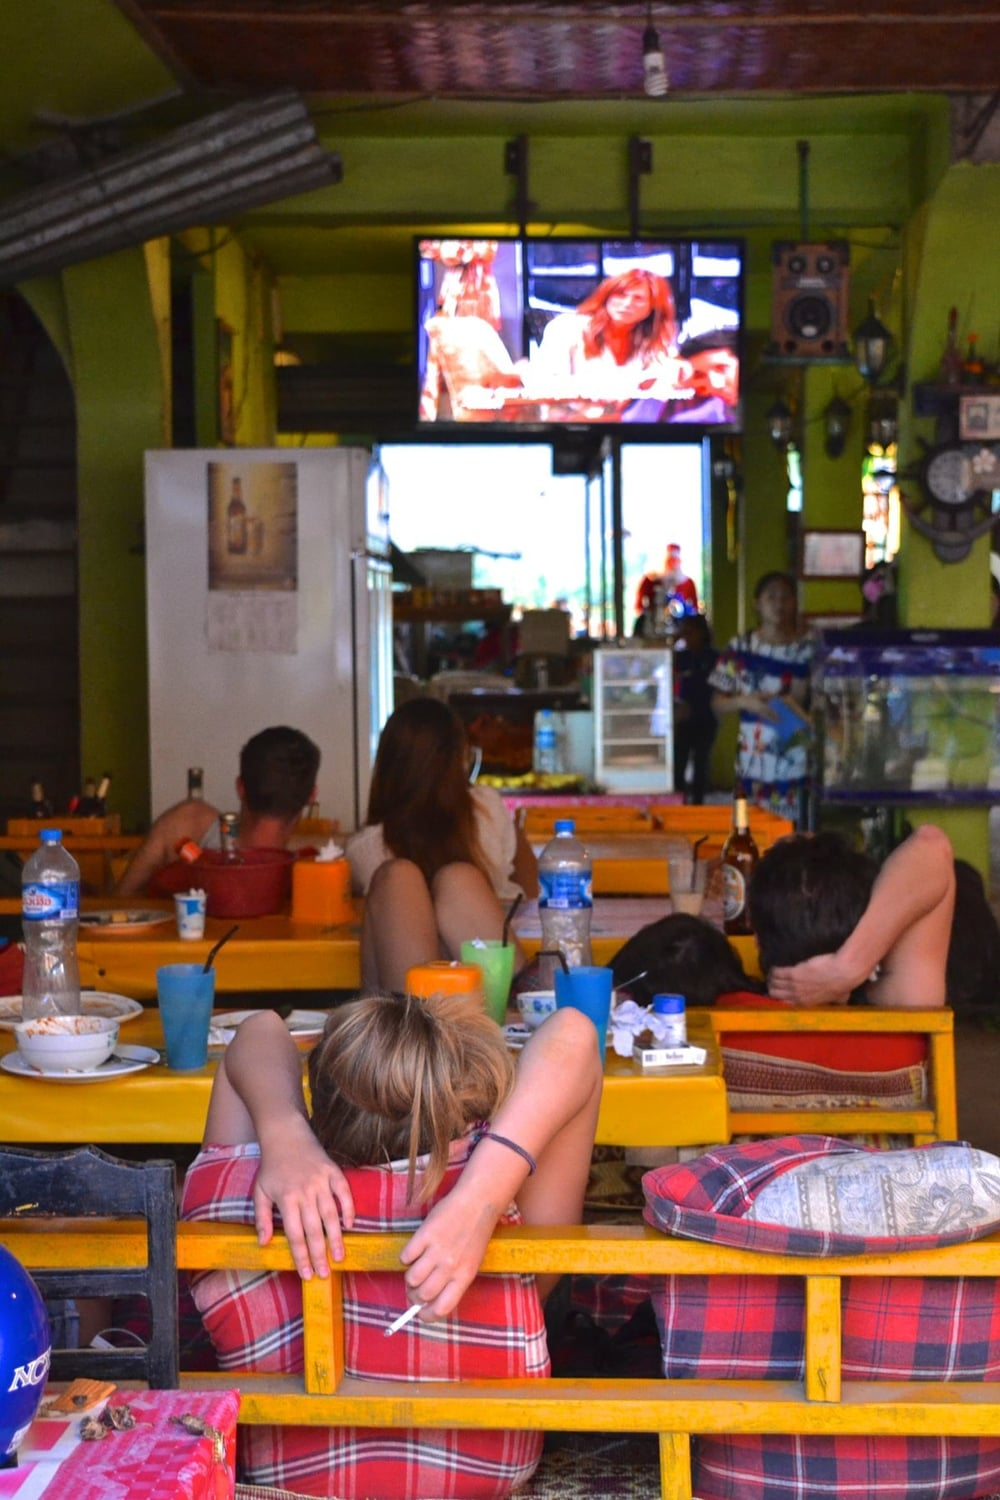 A 'Friends bar' full of hungover backpackers